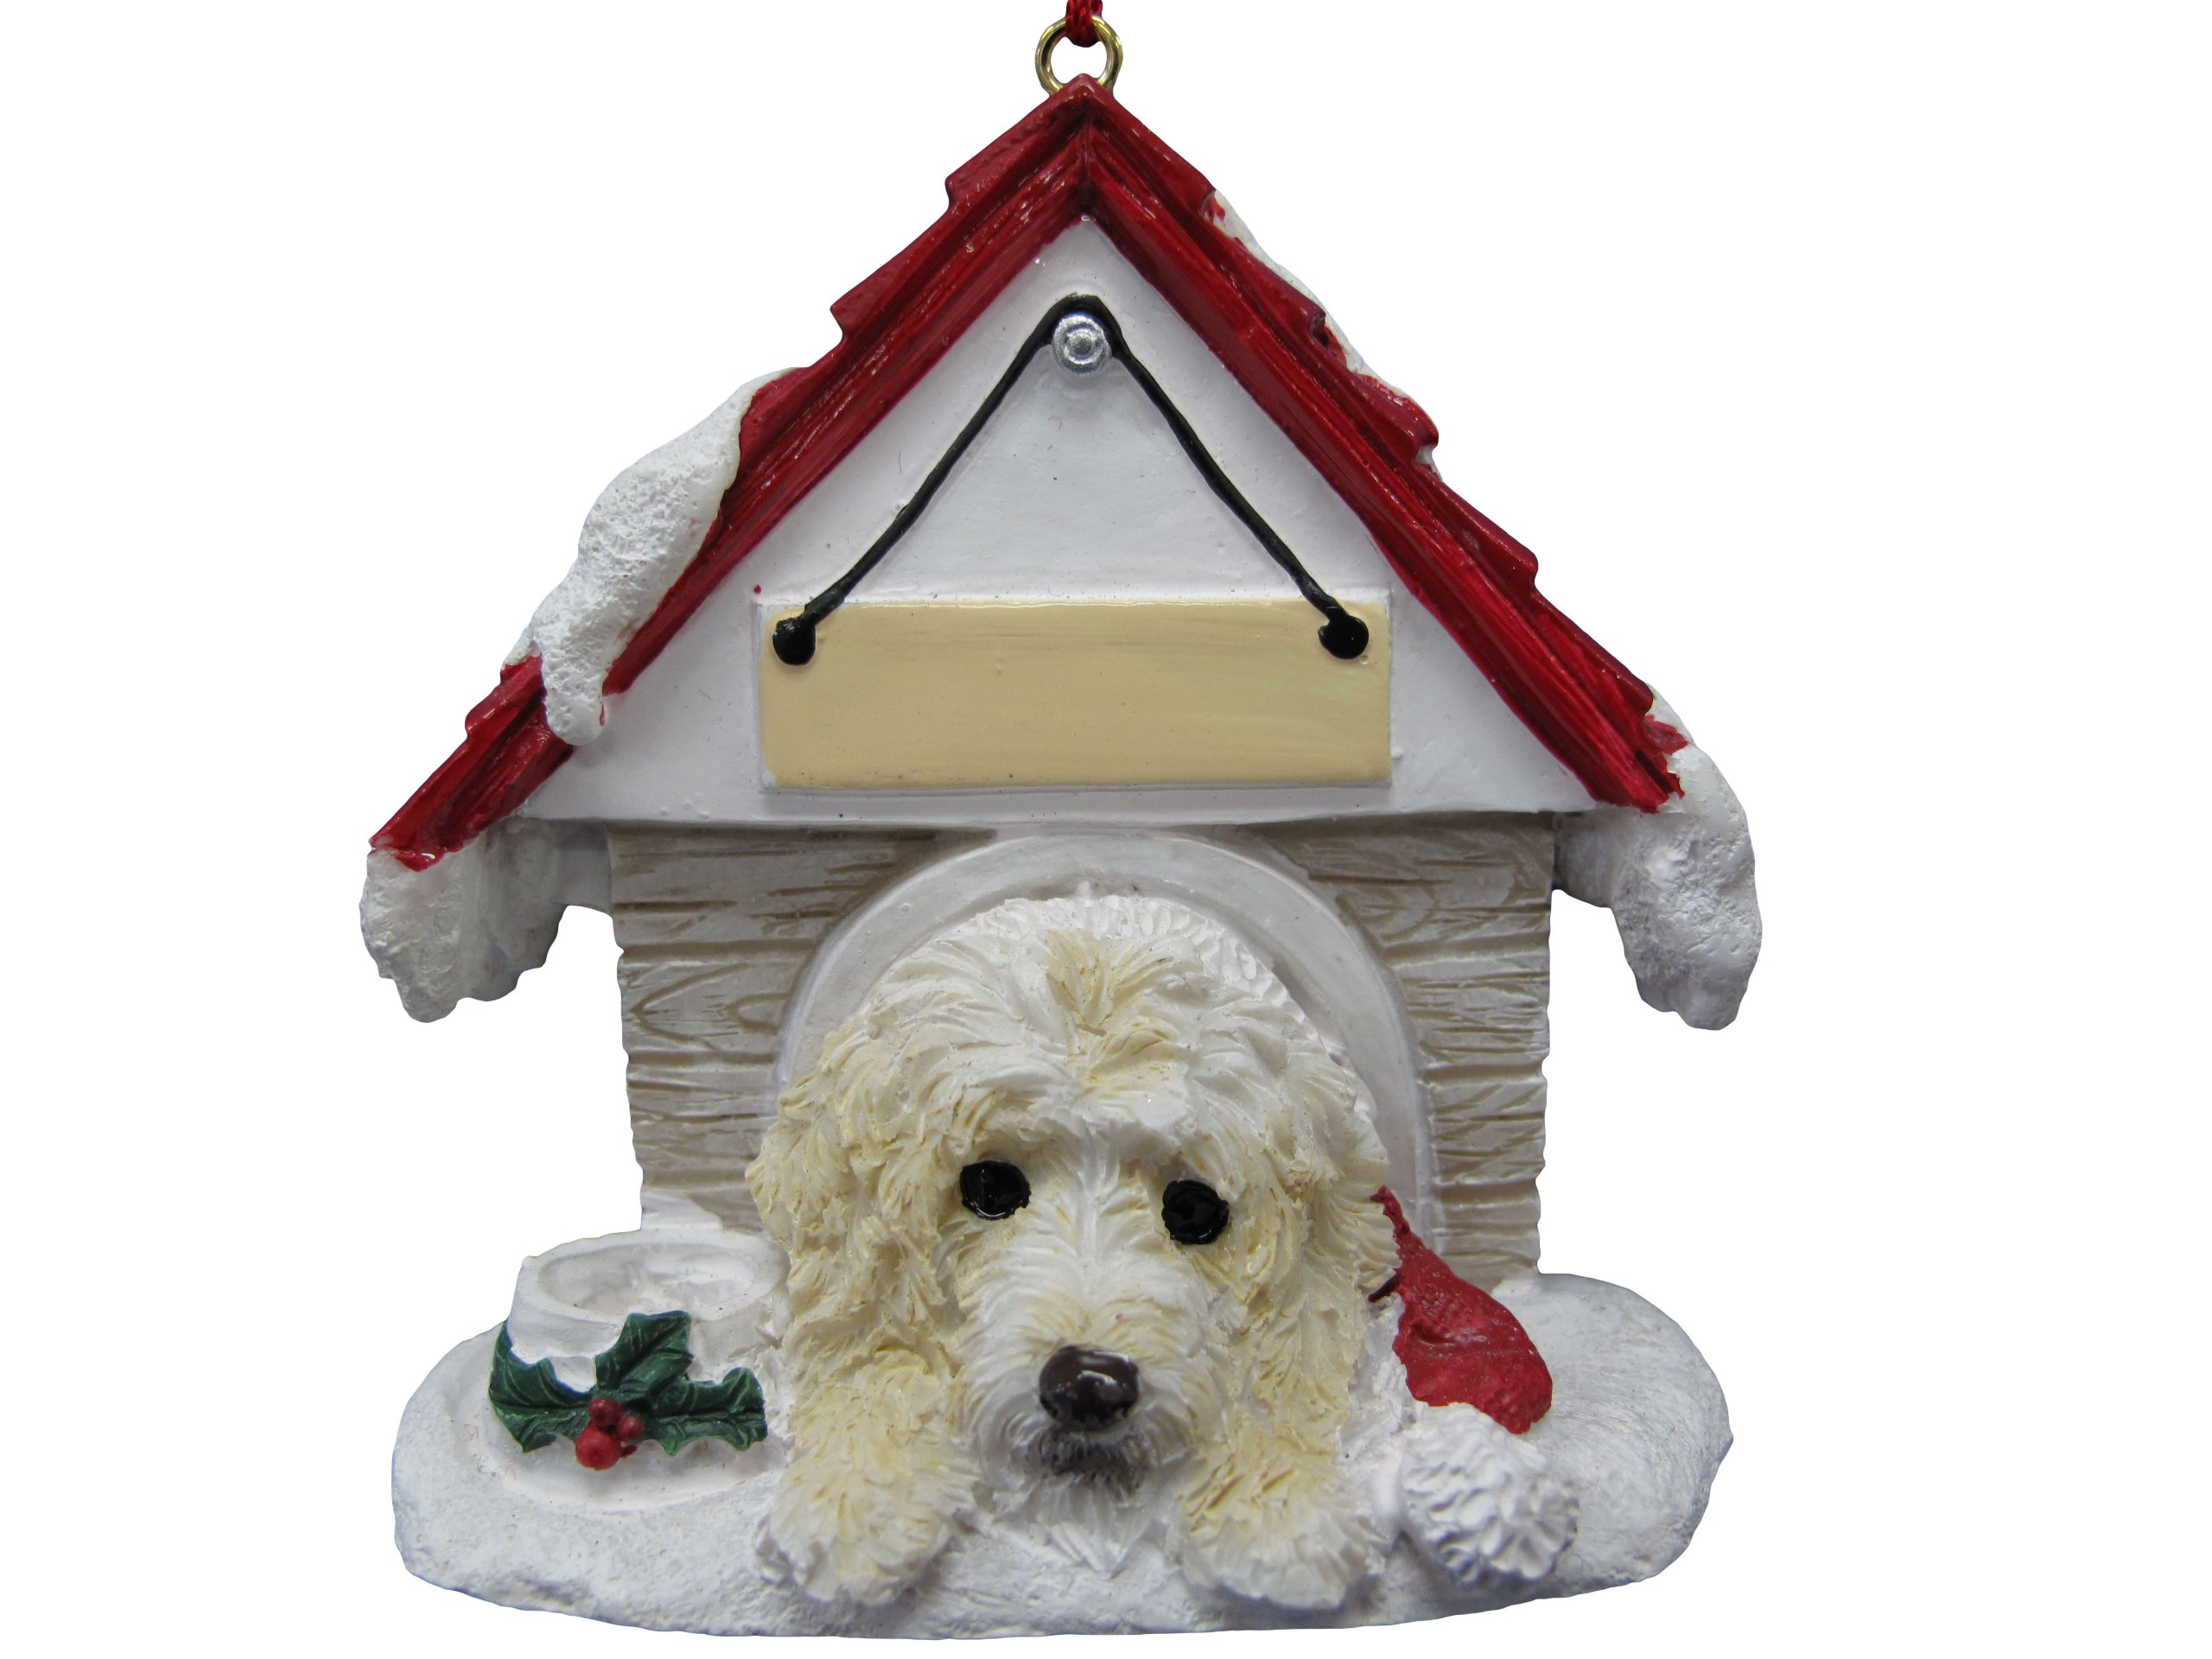 Labradoodle-Ornament-A-Great-Gift-For-Labradoodle-Owners-Hand-Painted-and-Easily-Personalized-Doghouse-Ornament-With-Magnetic-Back